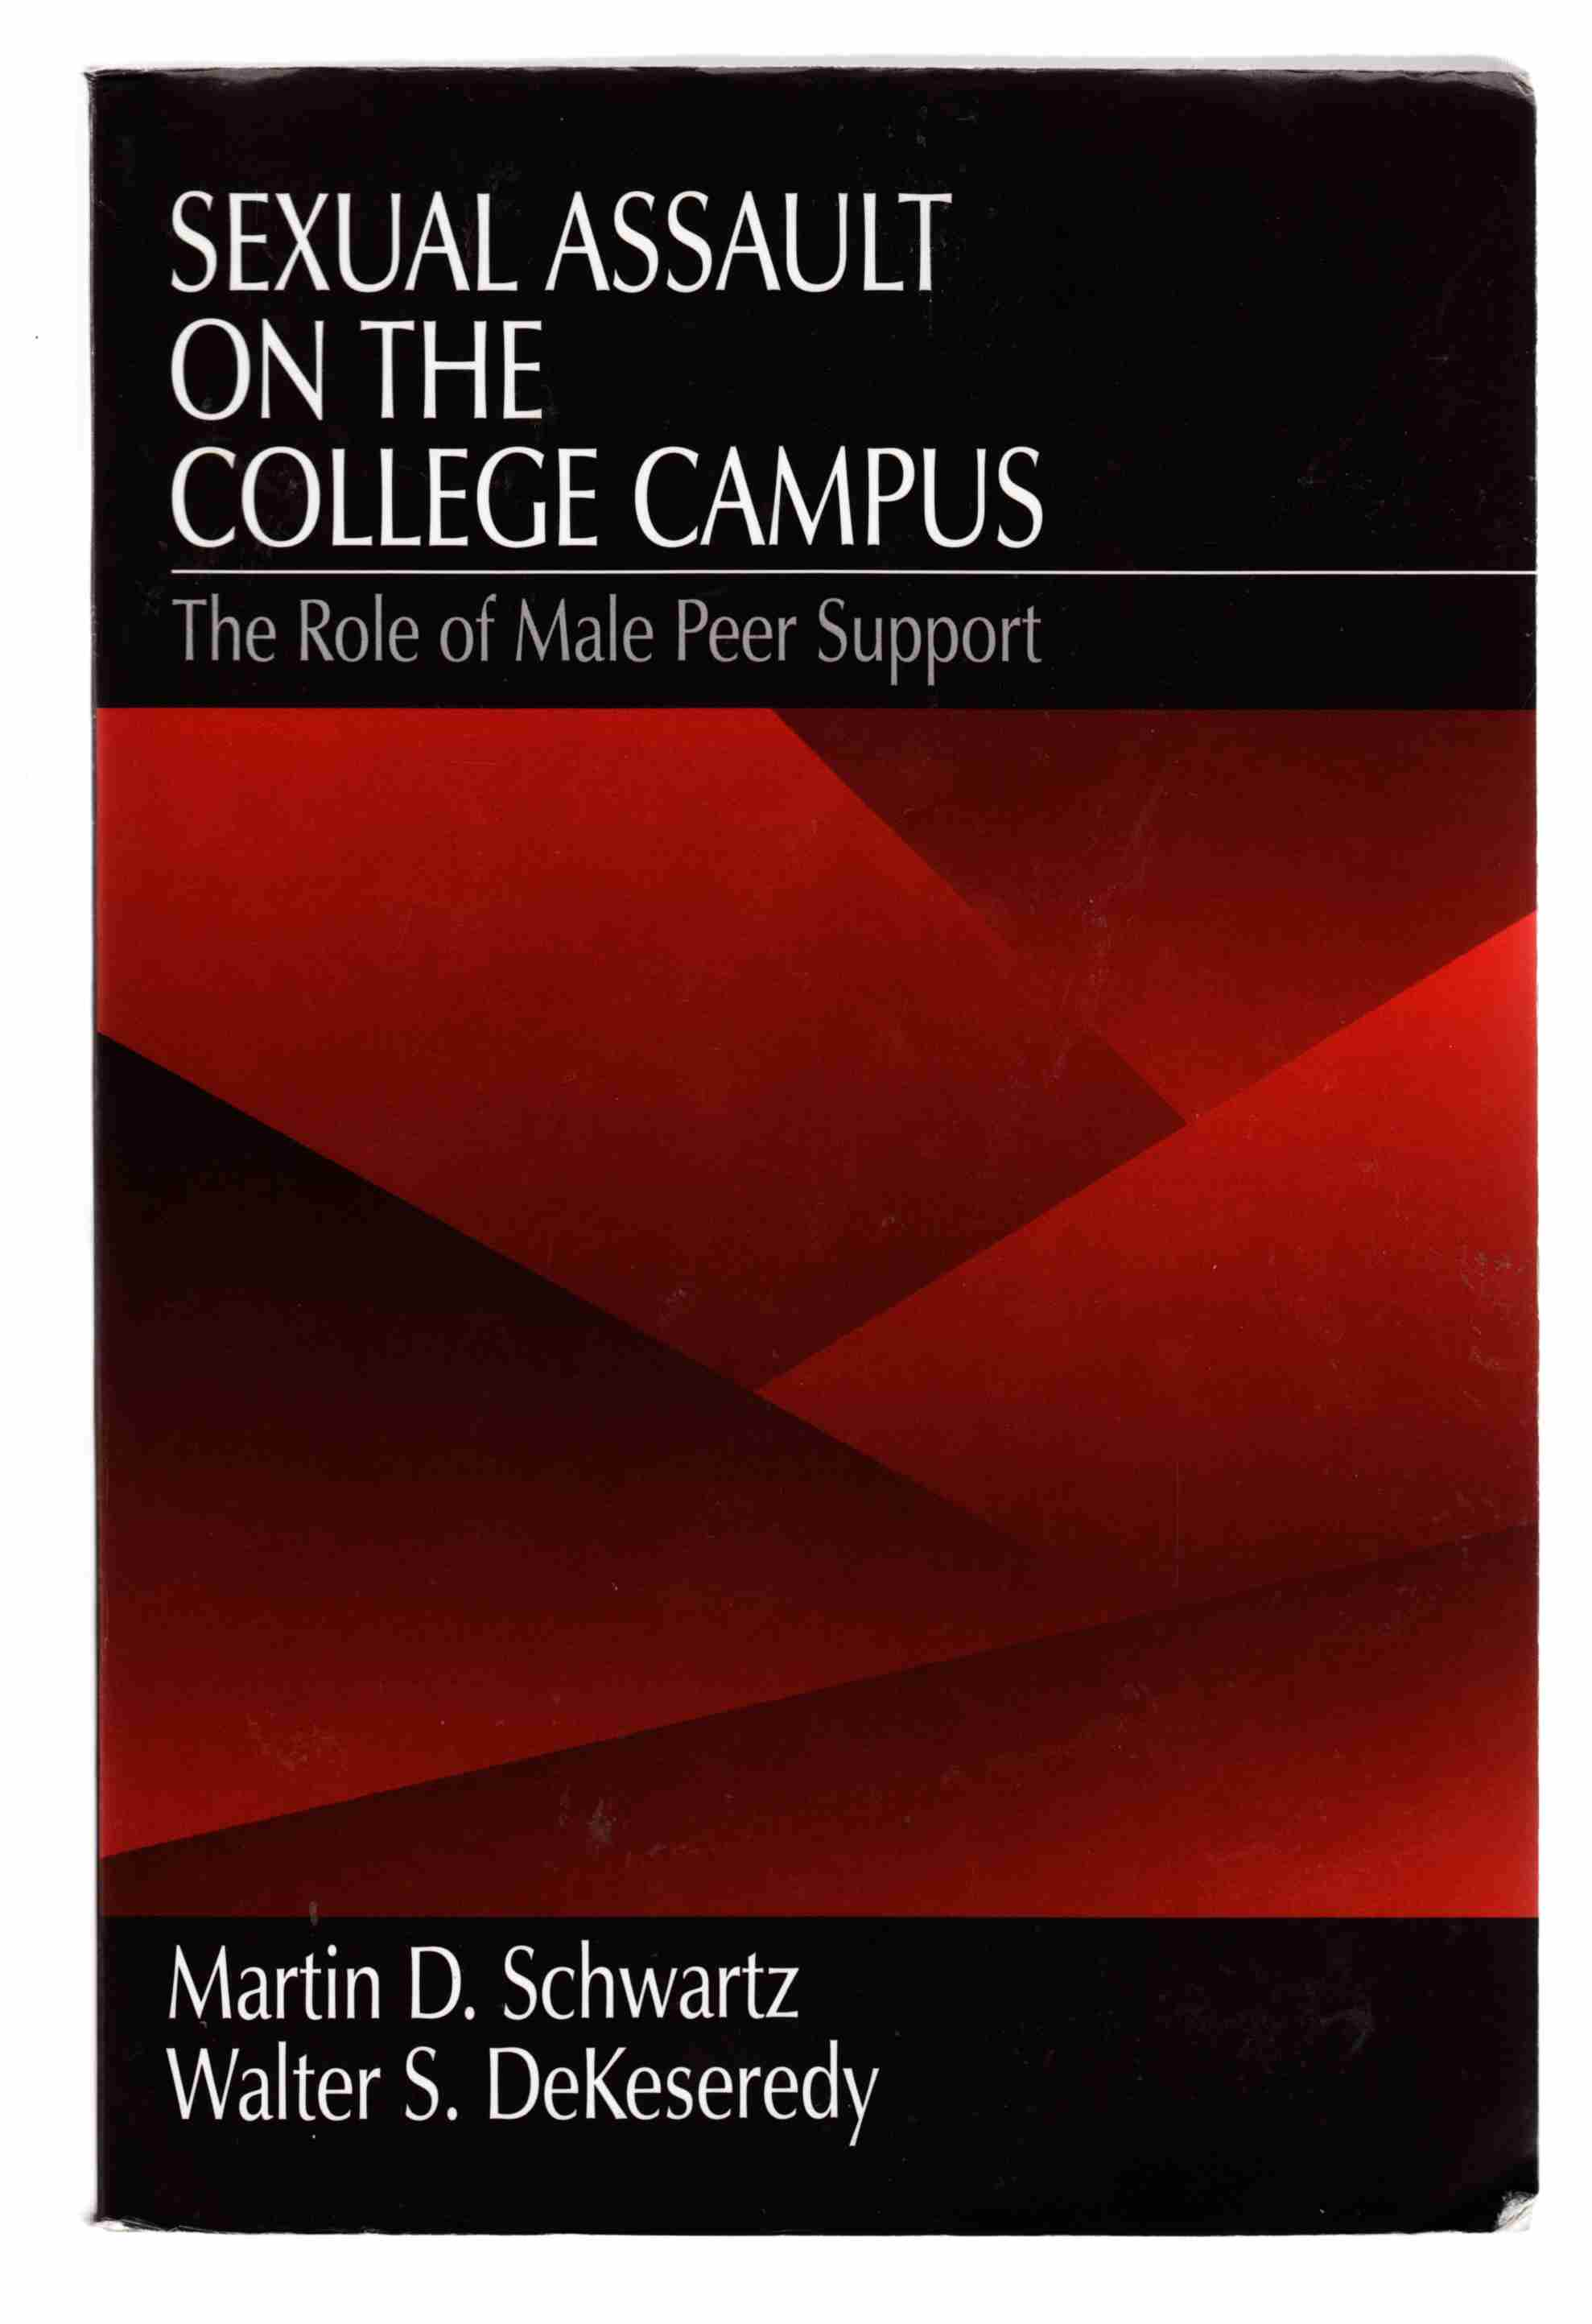 Image for Sexual Assault on the College Campus The Role of Male Peer Support